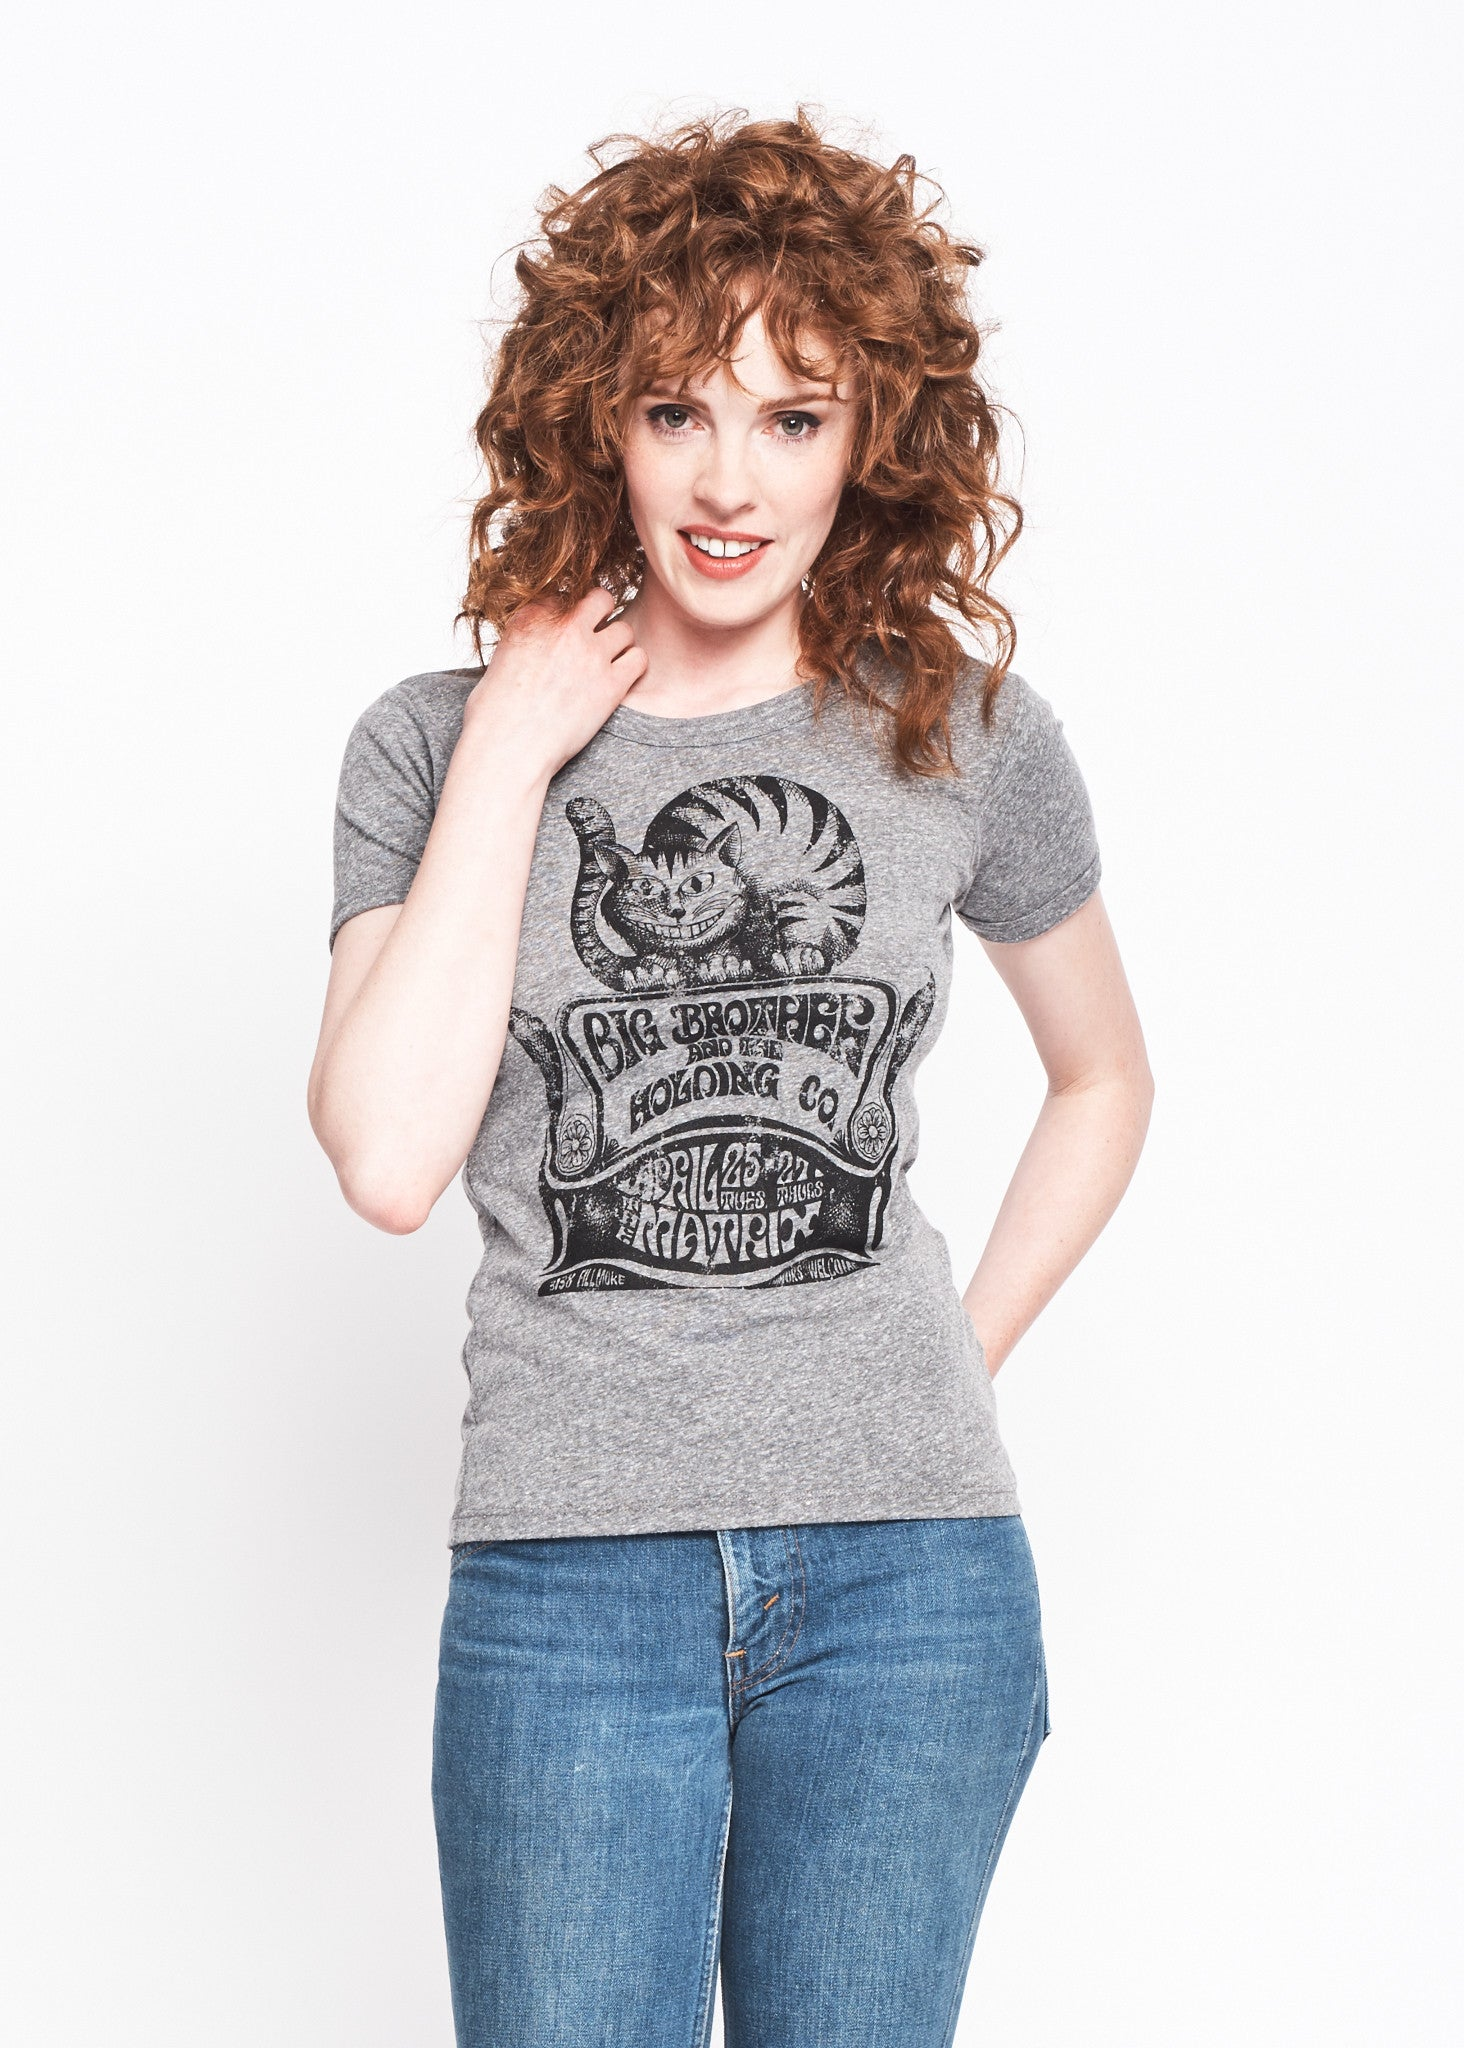 Cheshire Cat Ringer Crew - Heather Grey - Women's Muscle Tee - Midnight Rider